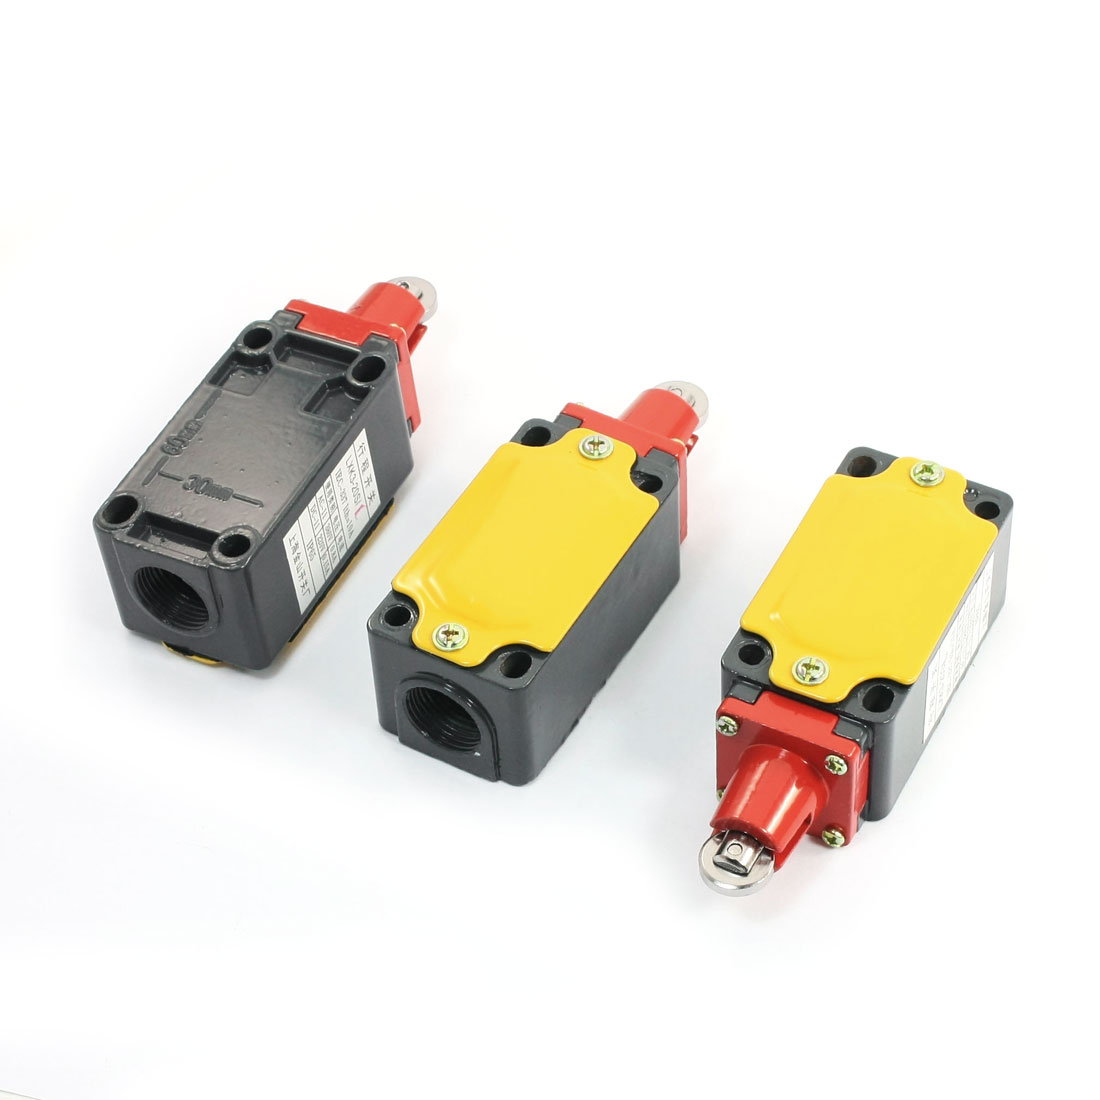 Unique Bargains 3pcs AC 380V 4 Terminal Top Roller Plunger Enclosed Momentary Limit Switch DPST